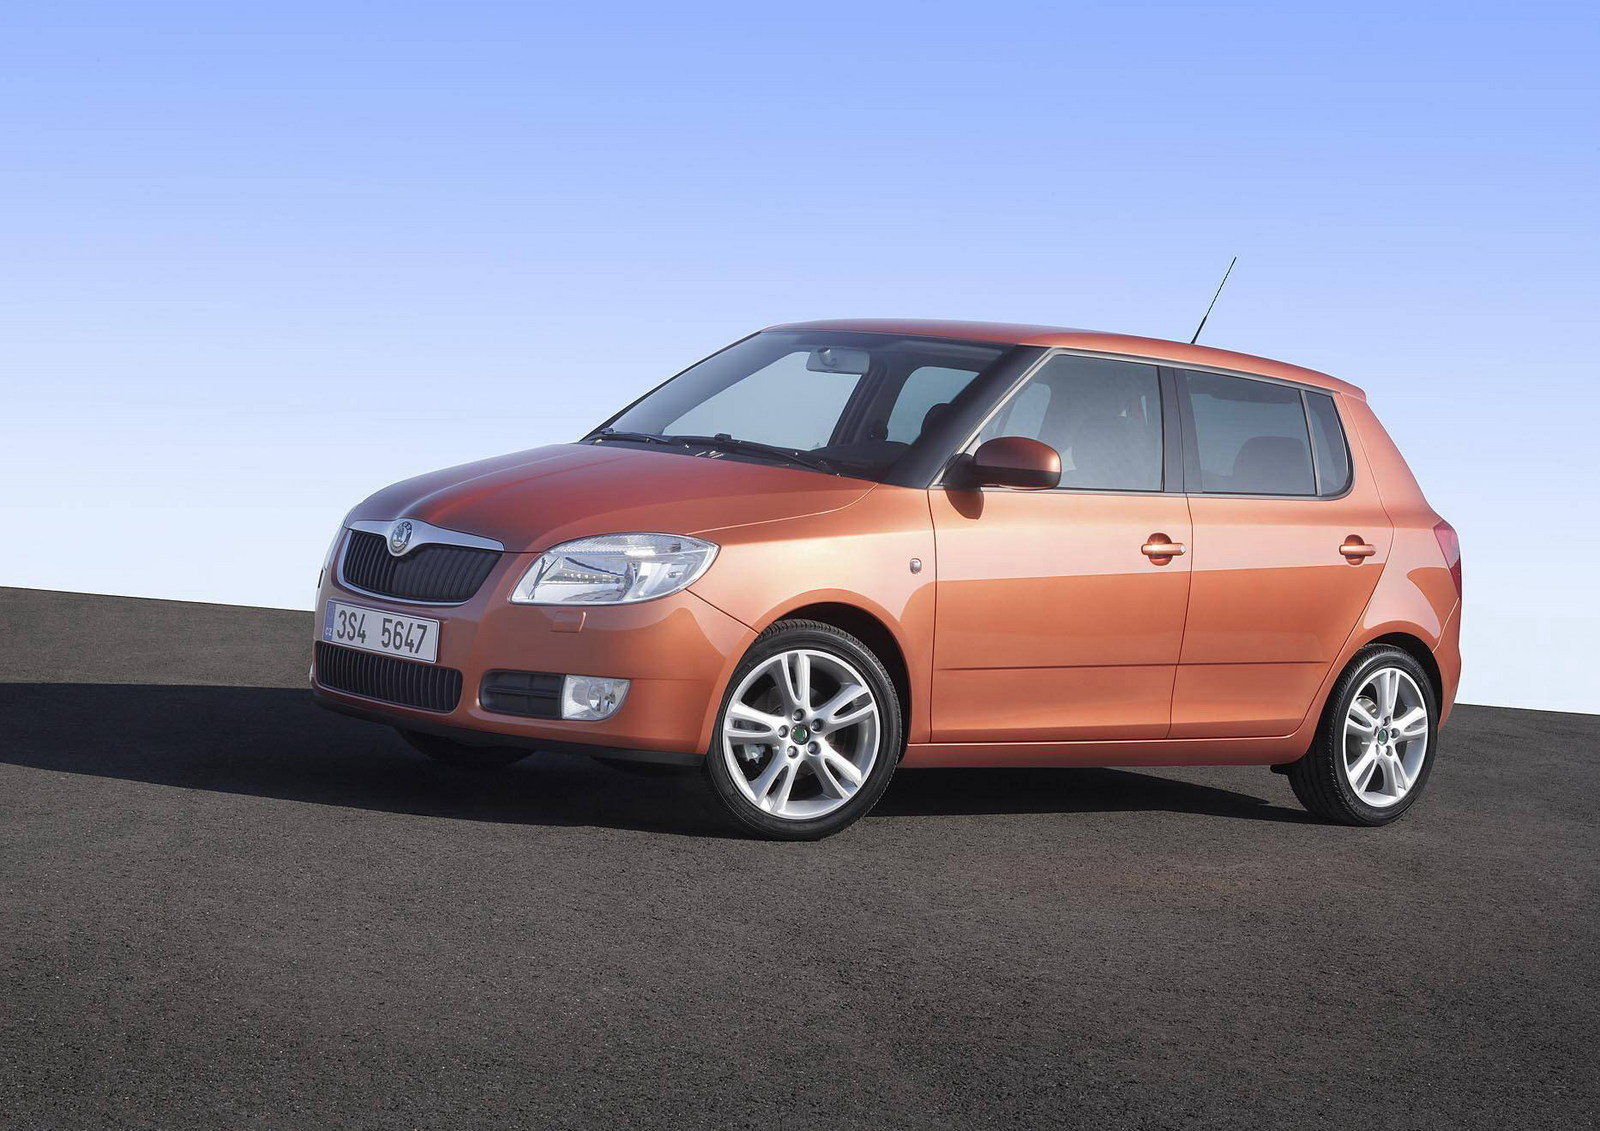 2007 skoda fabia picture 119685 car review top speed. Black Bedroom Furniture Sets. Home Design Ideas